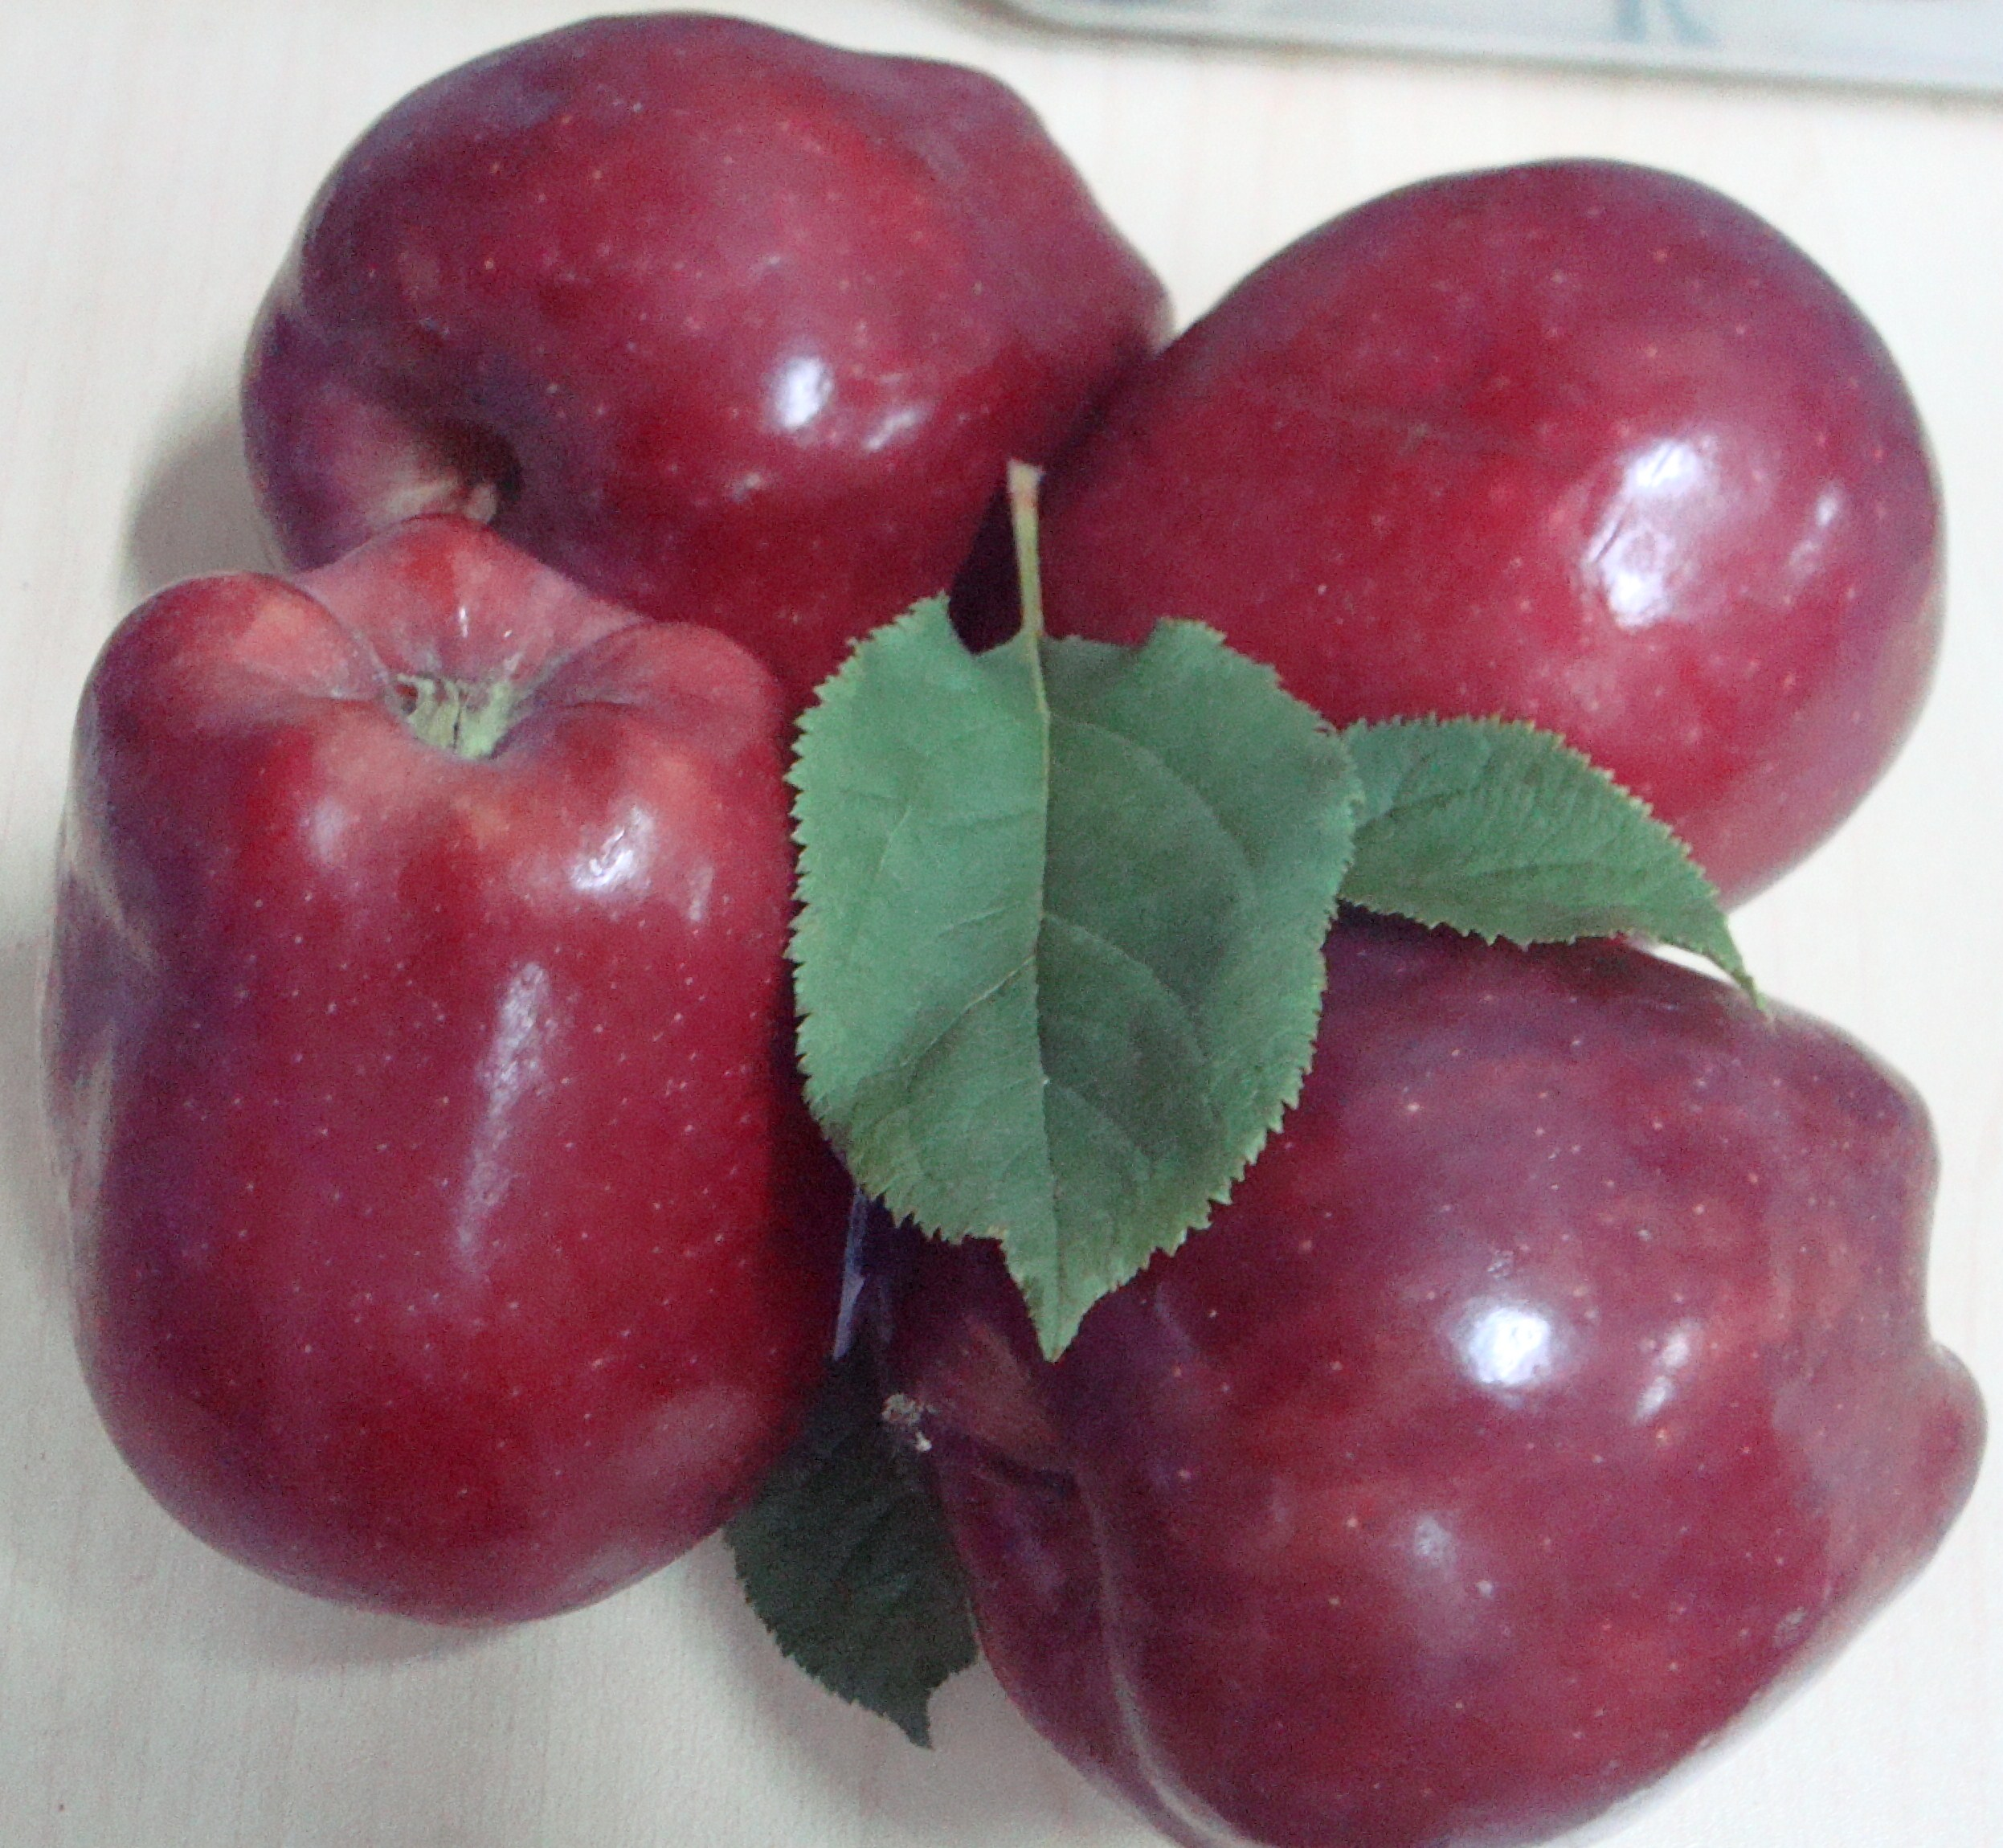 Grow An Apple Tree From Seed In Singapore?